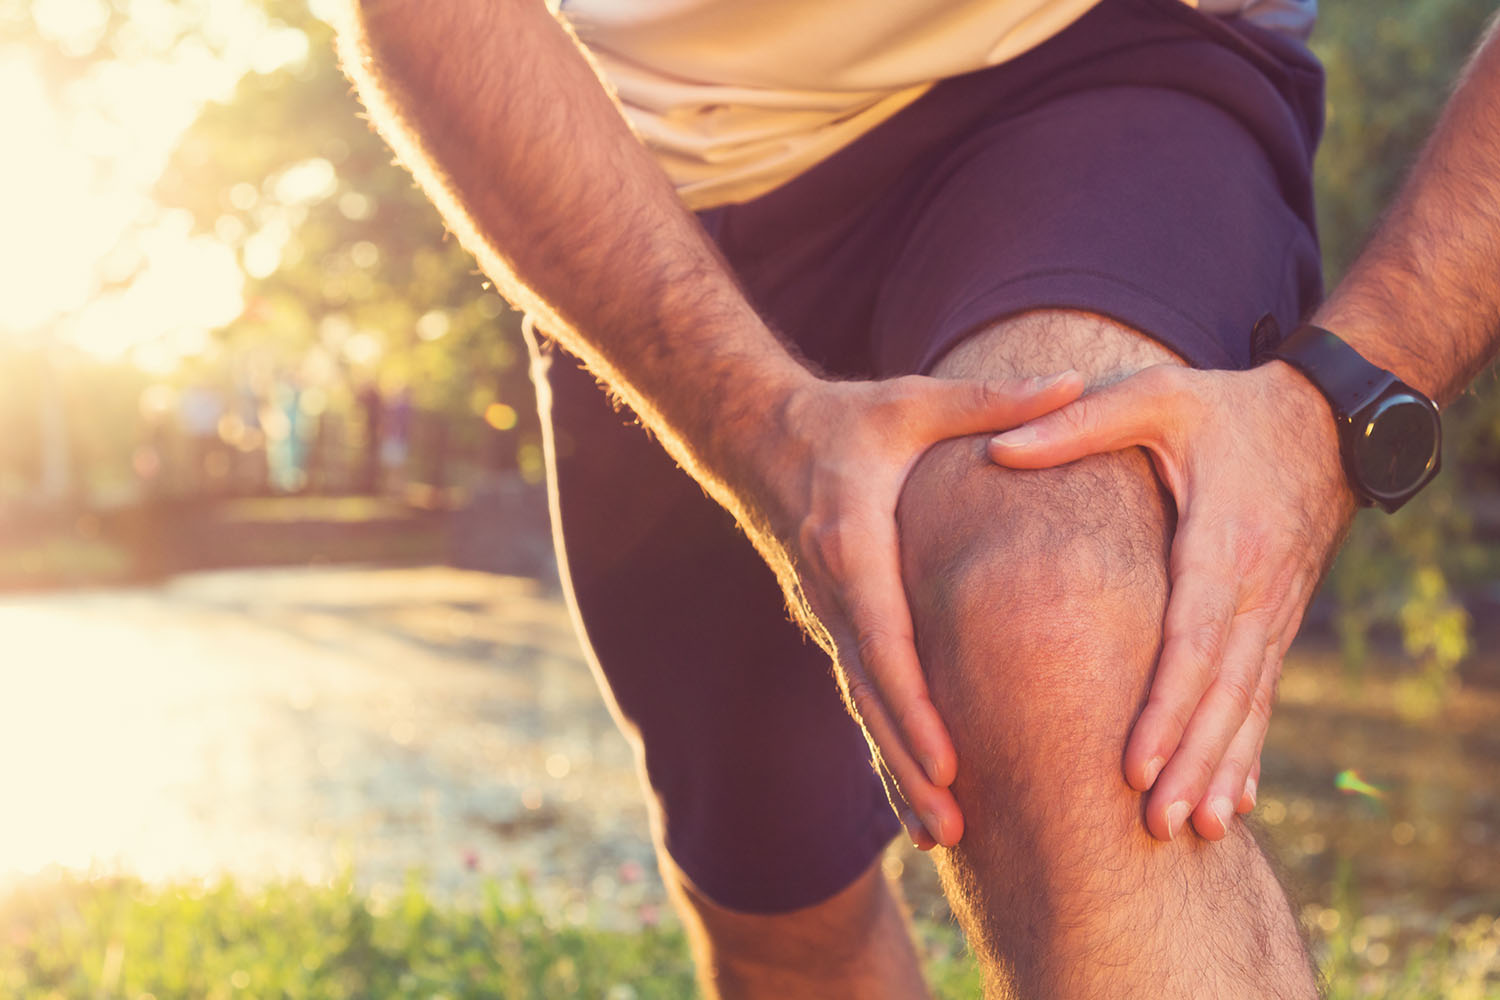 Knee Injuries Need Osteoarthritis Treatment